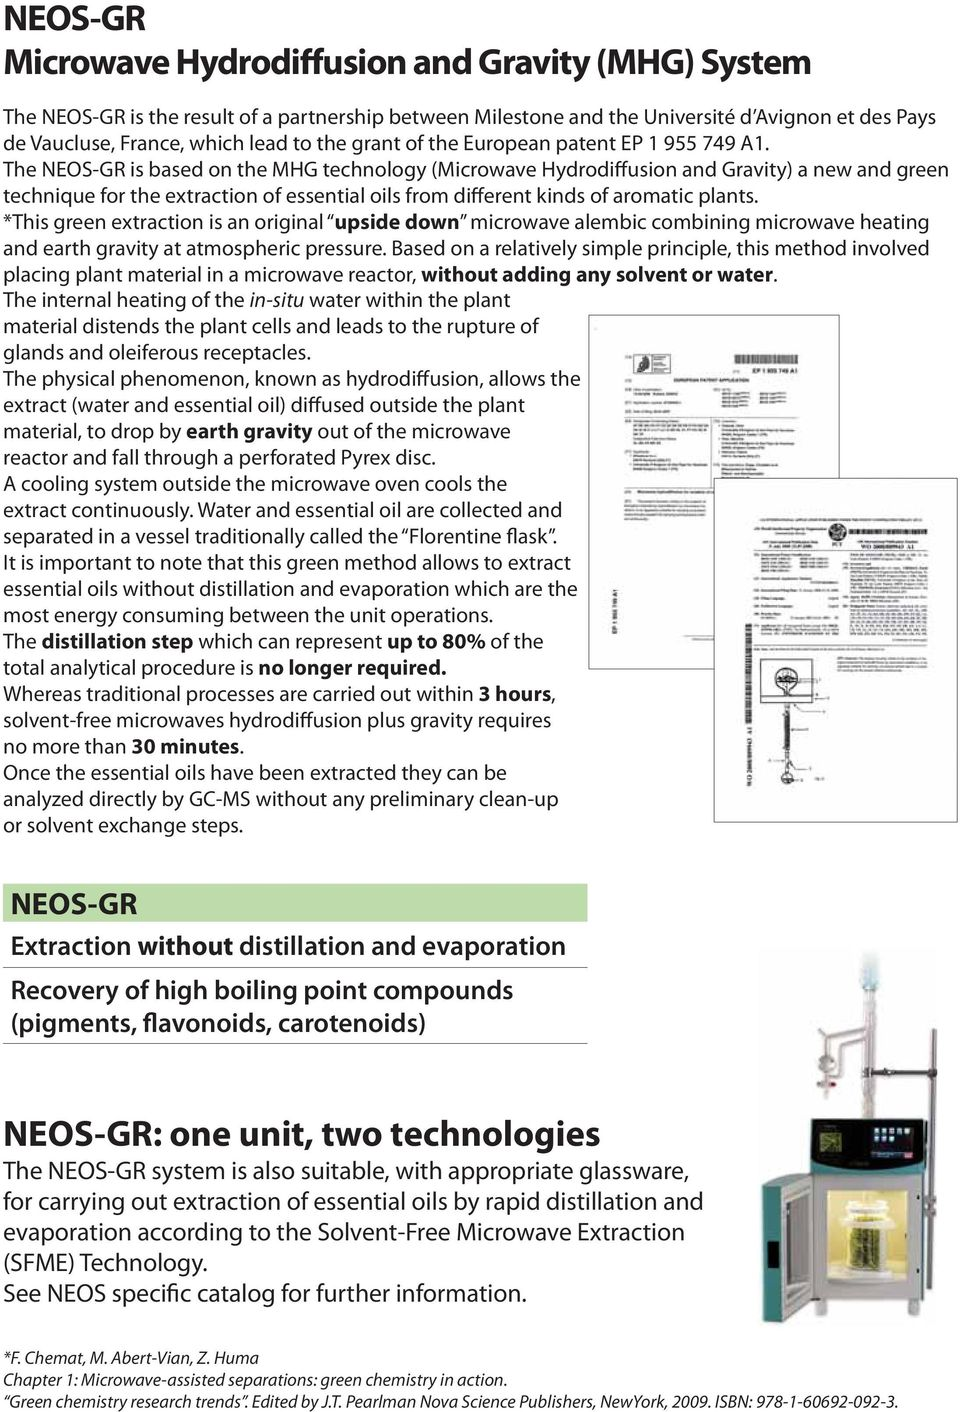 The NEOS-GR is based on the MHG technology (Microwave Hydrodiffusion and Gravity) a new and green technique for the extraction of essential oils from different kinds of aromatic plants.